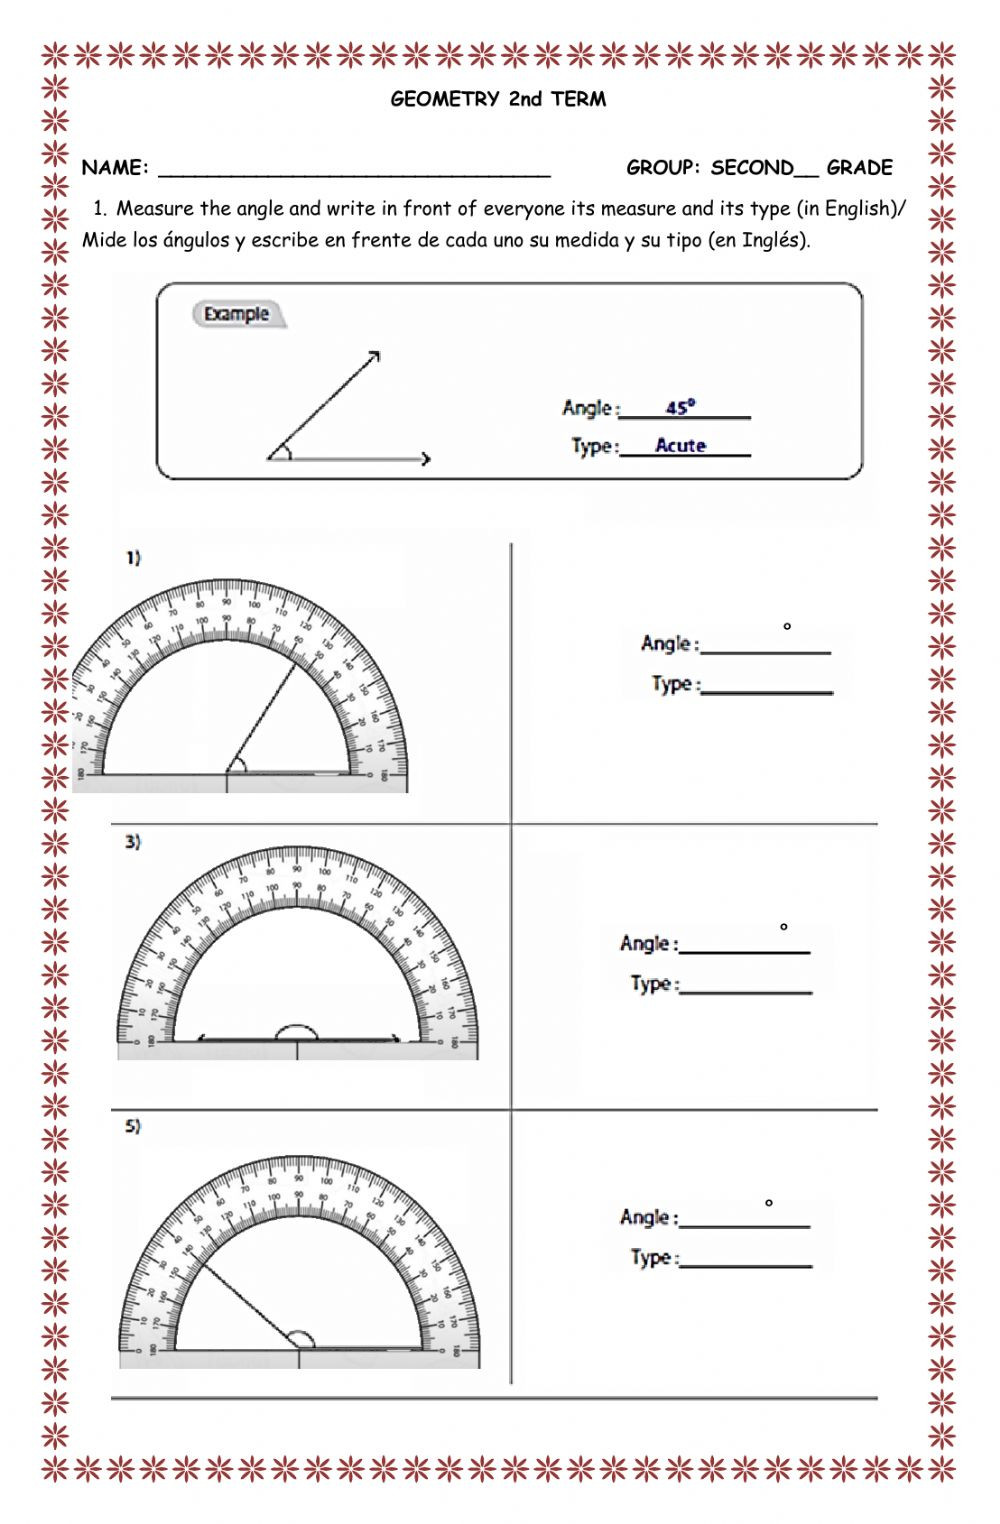 Second Grade Geometry Worksheets Evaluation Second Term Second Grade Geometry Interactive